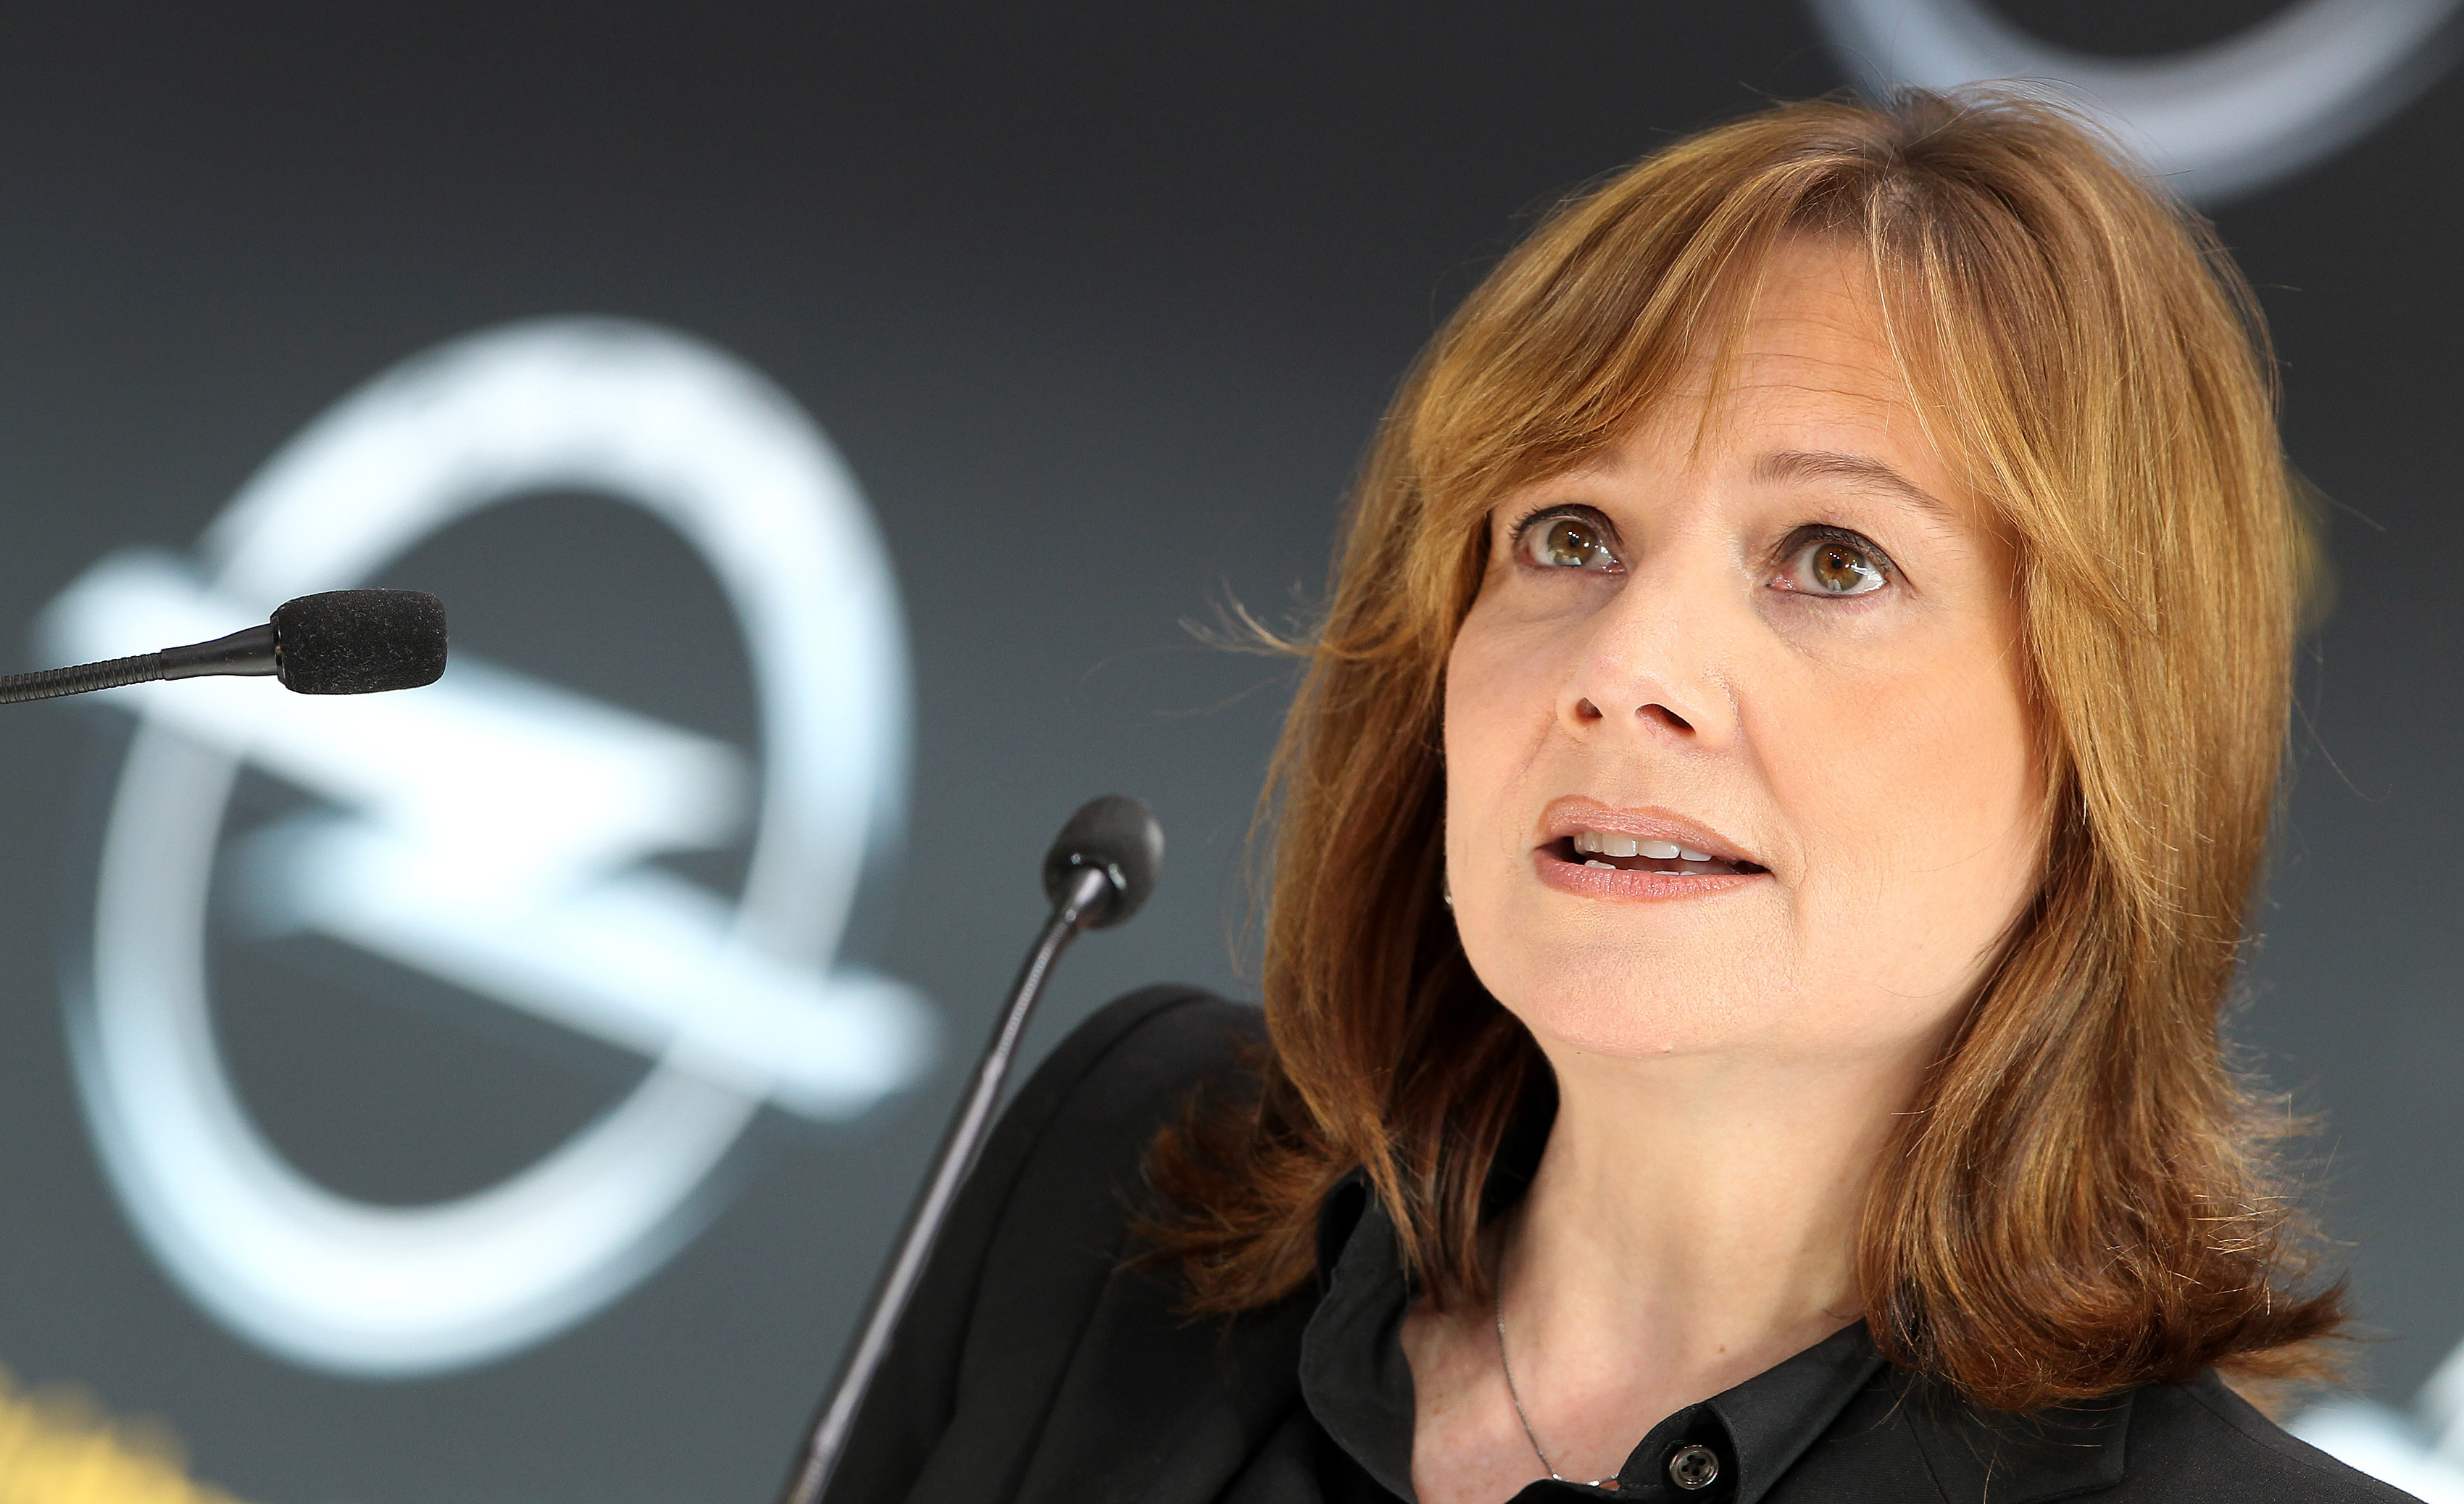 Mary Barra, a new CEO of U.S. carmaker General Motors GM addresses the media during a news conference at the headquarters of the company's German subsidiary Opel in Ruesselsheim, on January 27, 2014.